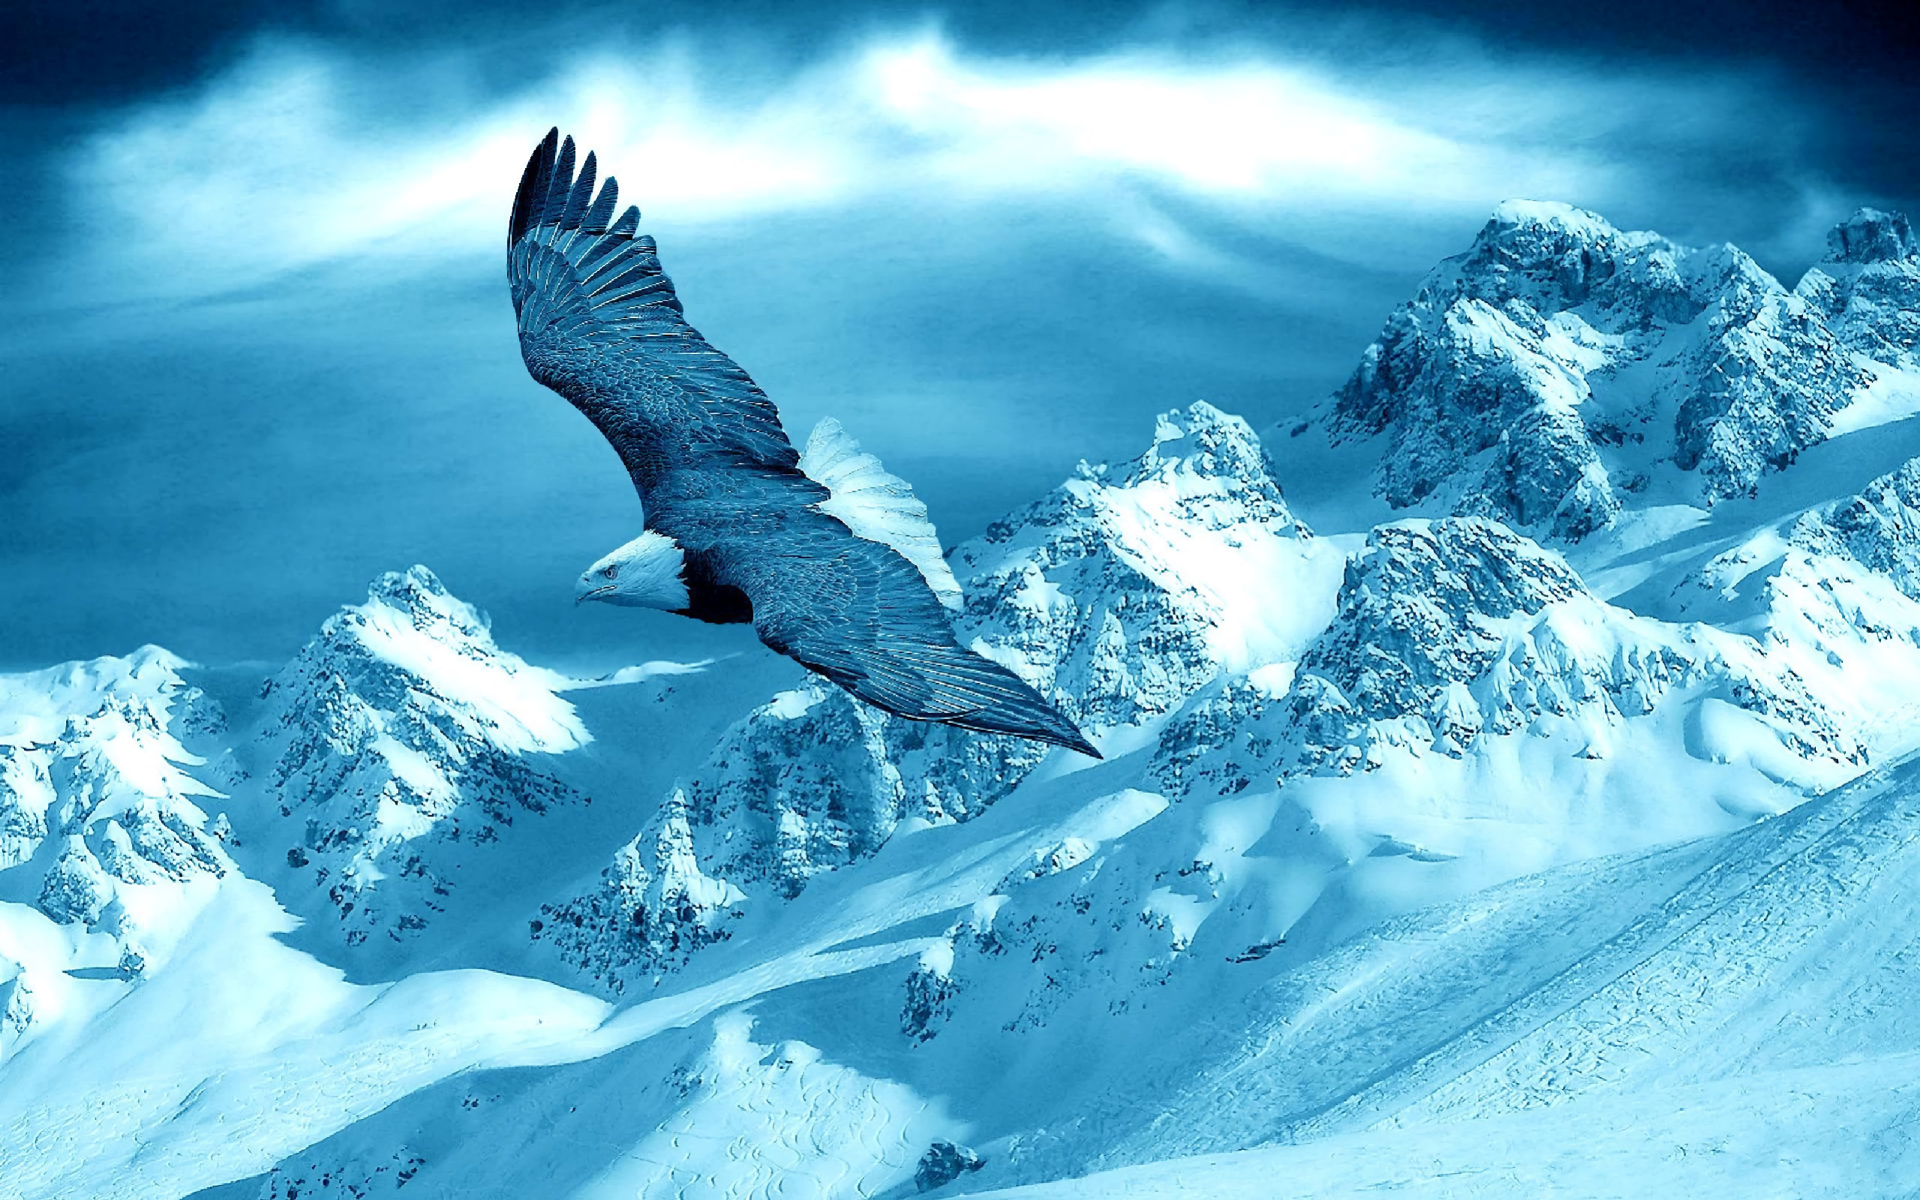 Eagle Flying Over Winter Landscape Full HD Wallpaper And